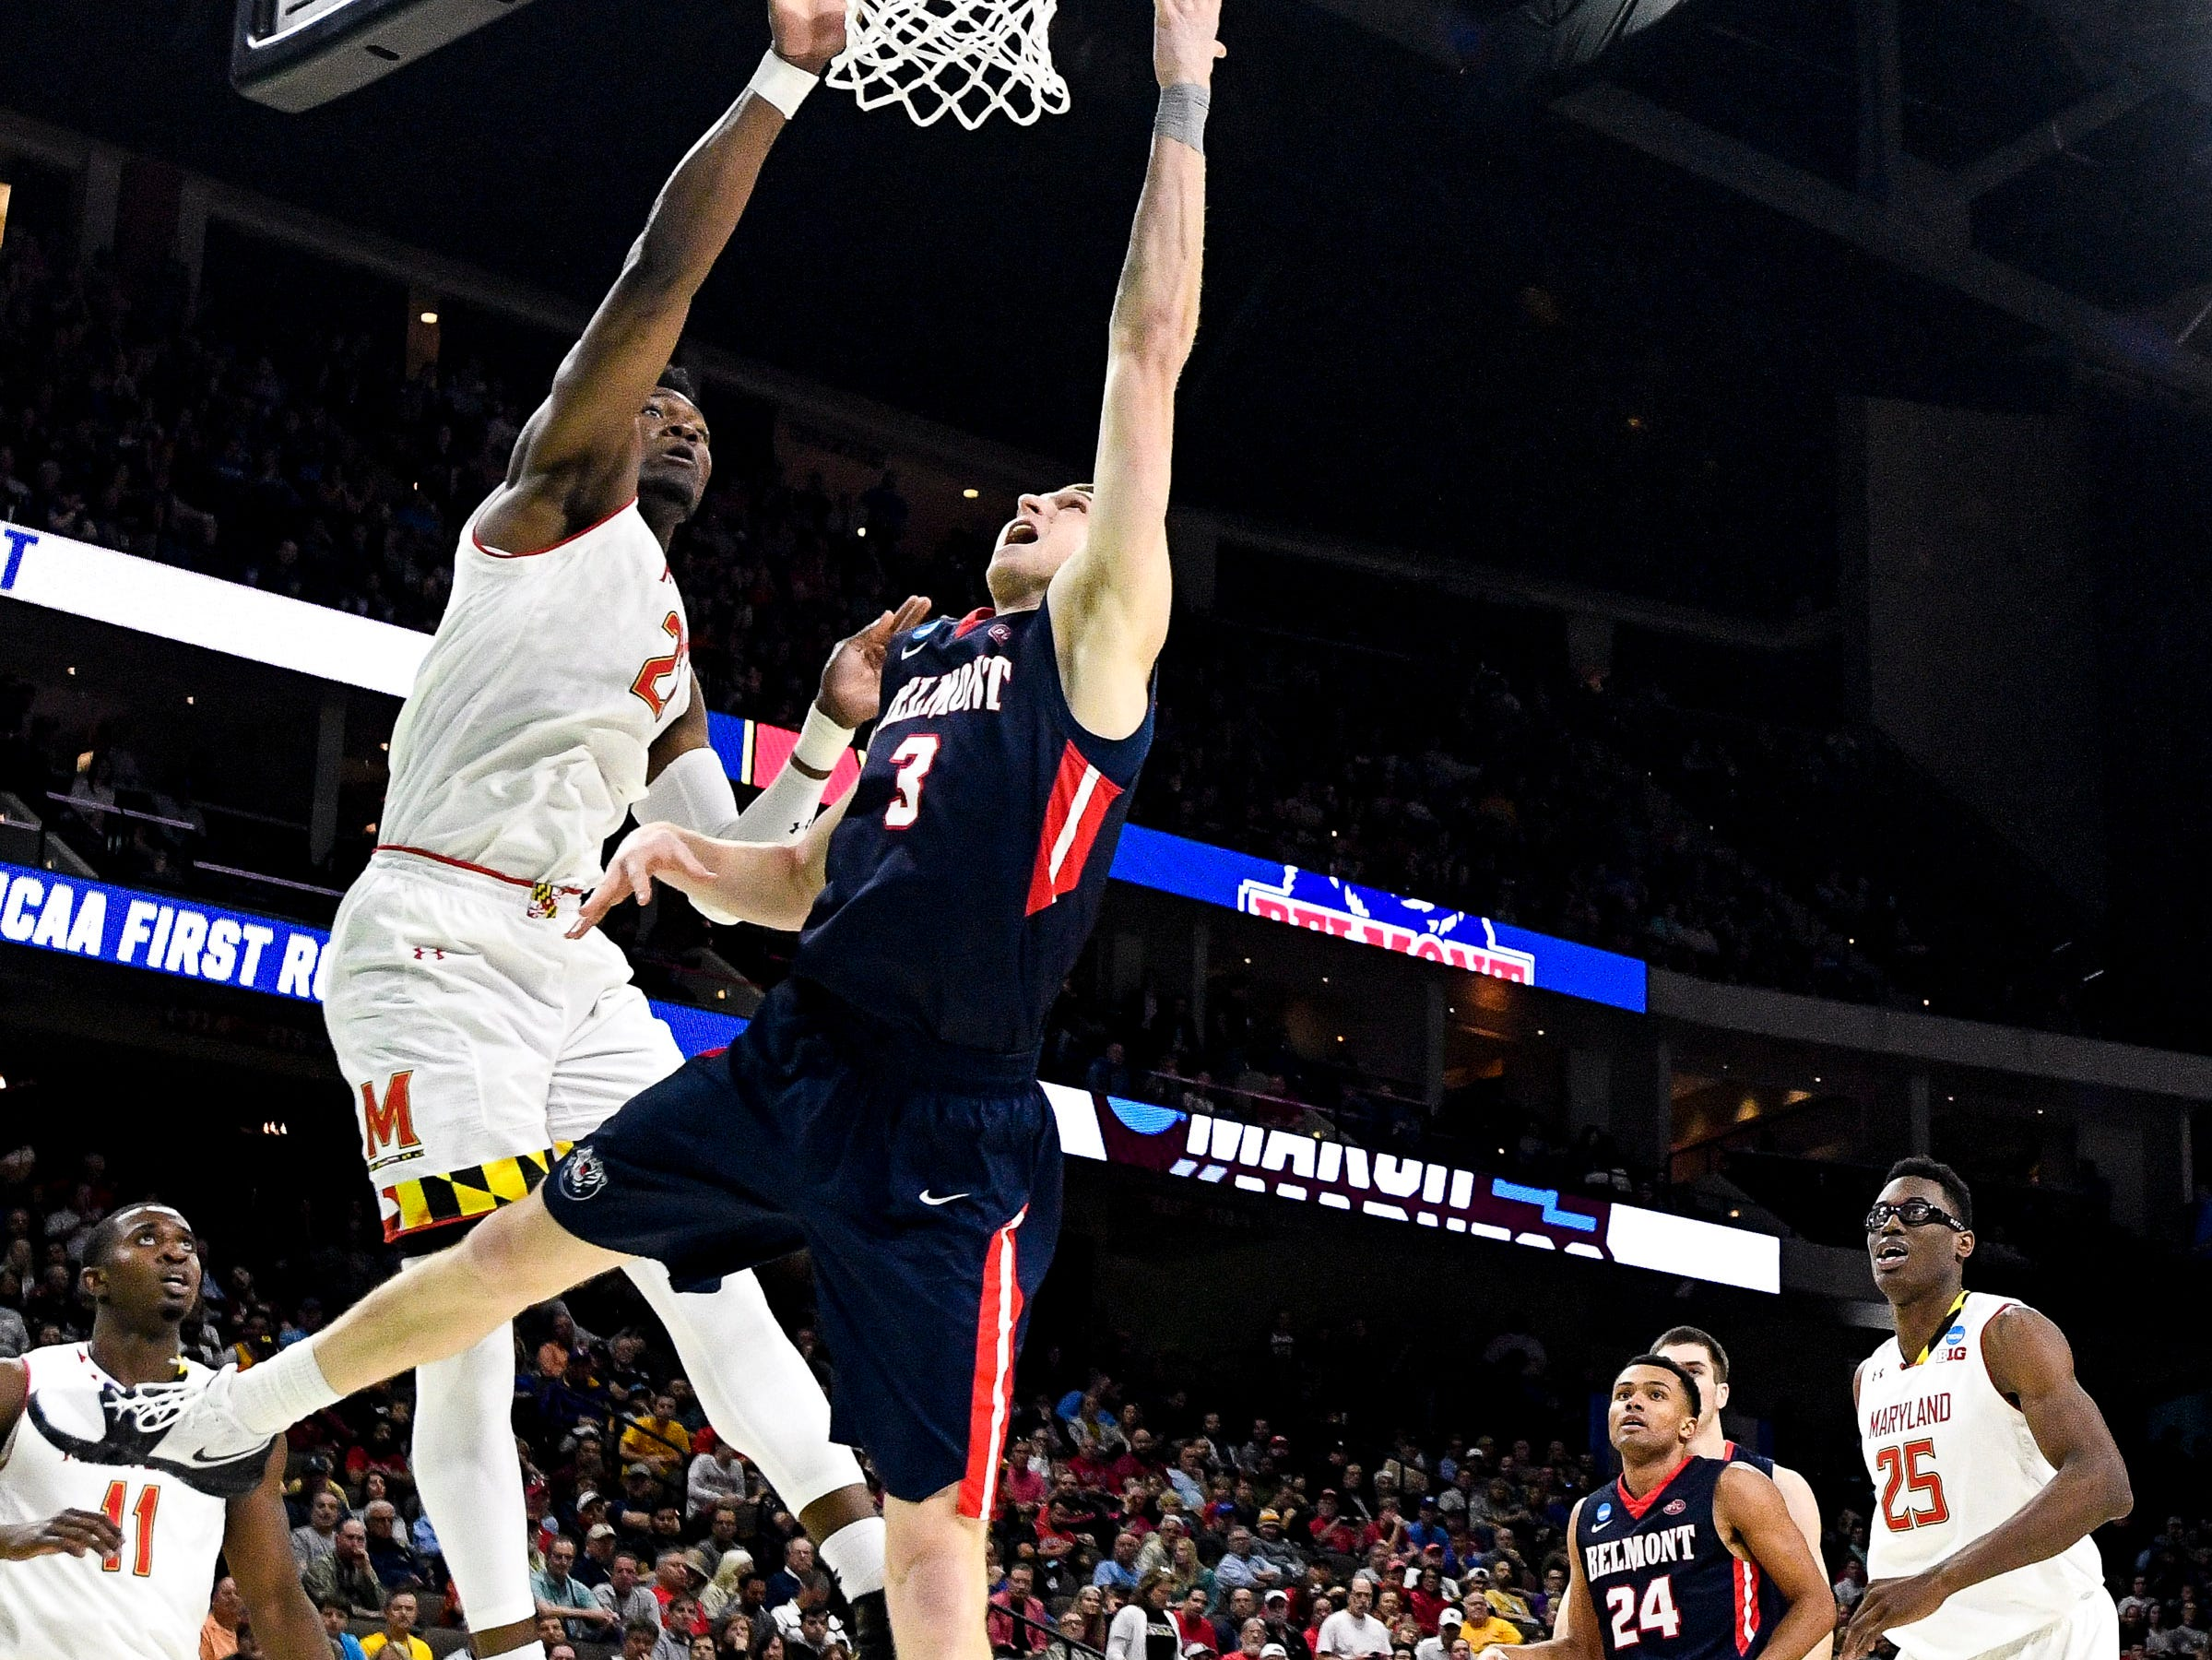 Belmont guard/forward Dylan Windler (3) shoots past Maryland forward Bruno Fernando (23) during the second half of the first-round NCAA college basketball tournament game at VyStar Veterans Memorial Arena in Jacksonville, Fla., Thursday, March 21, 2019.